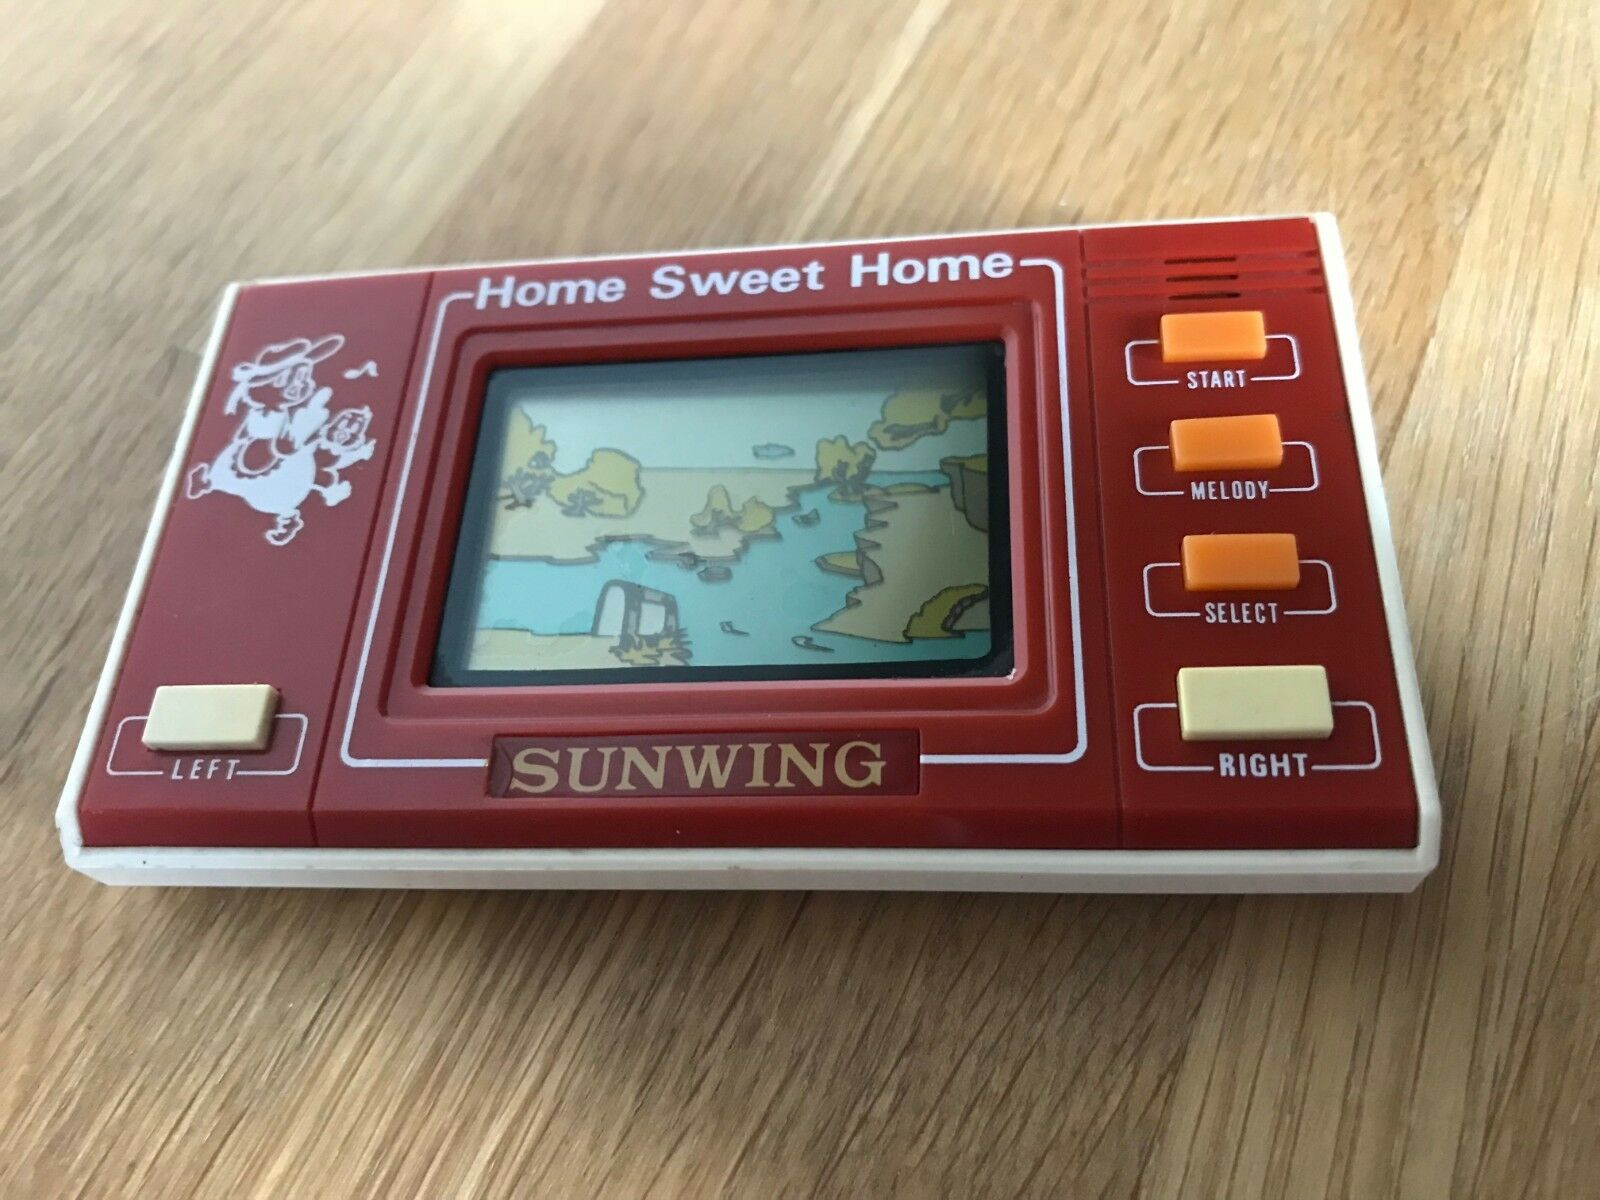 Rare Sunwing Home Home Home Sweet Home 1980's Vintage LCD Handheld Electronic Game in VGC. e7a303